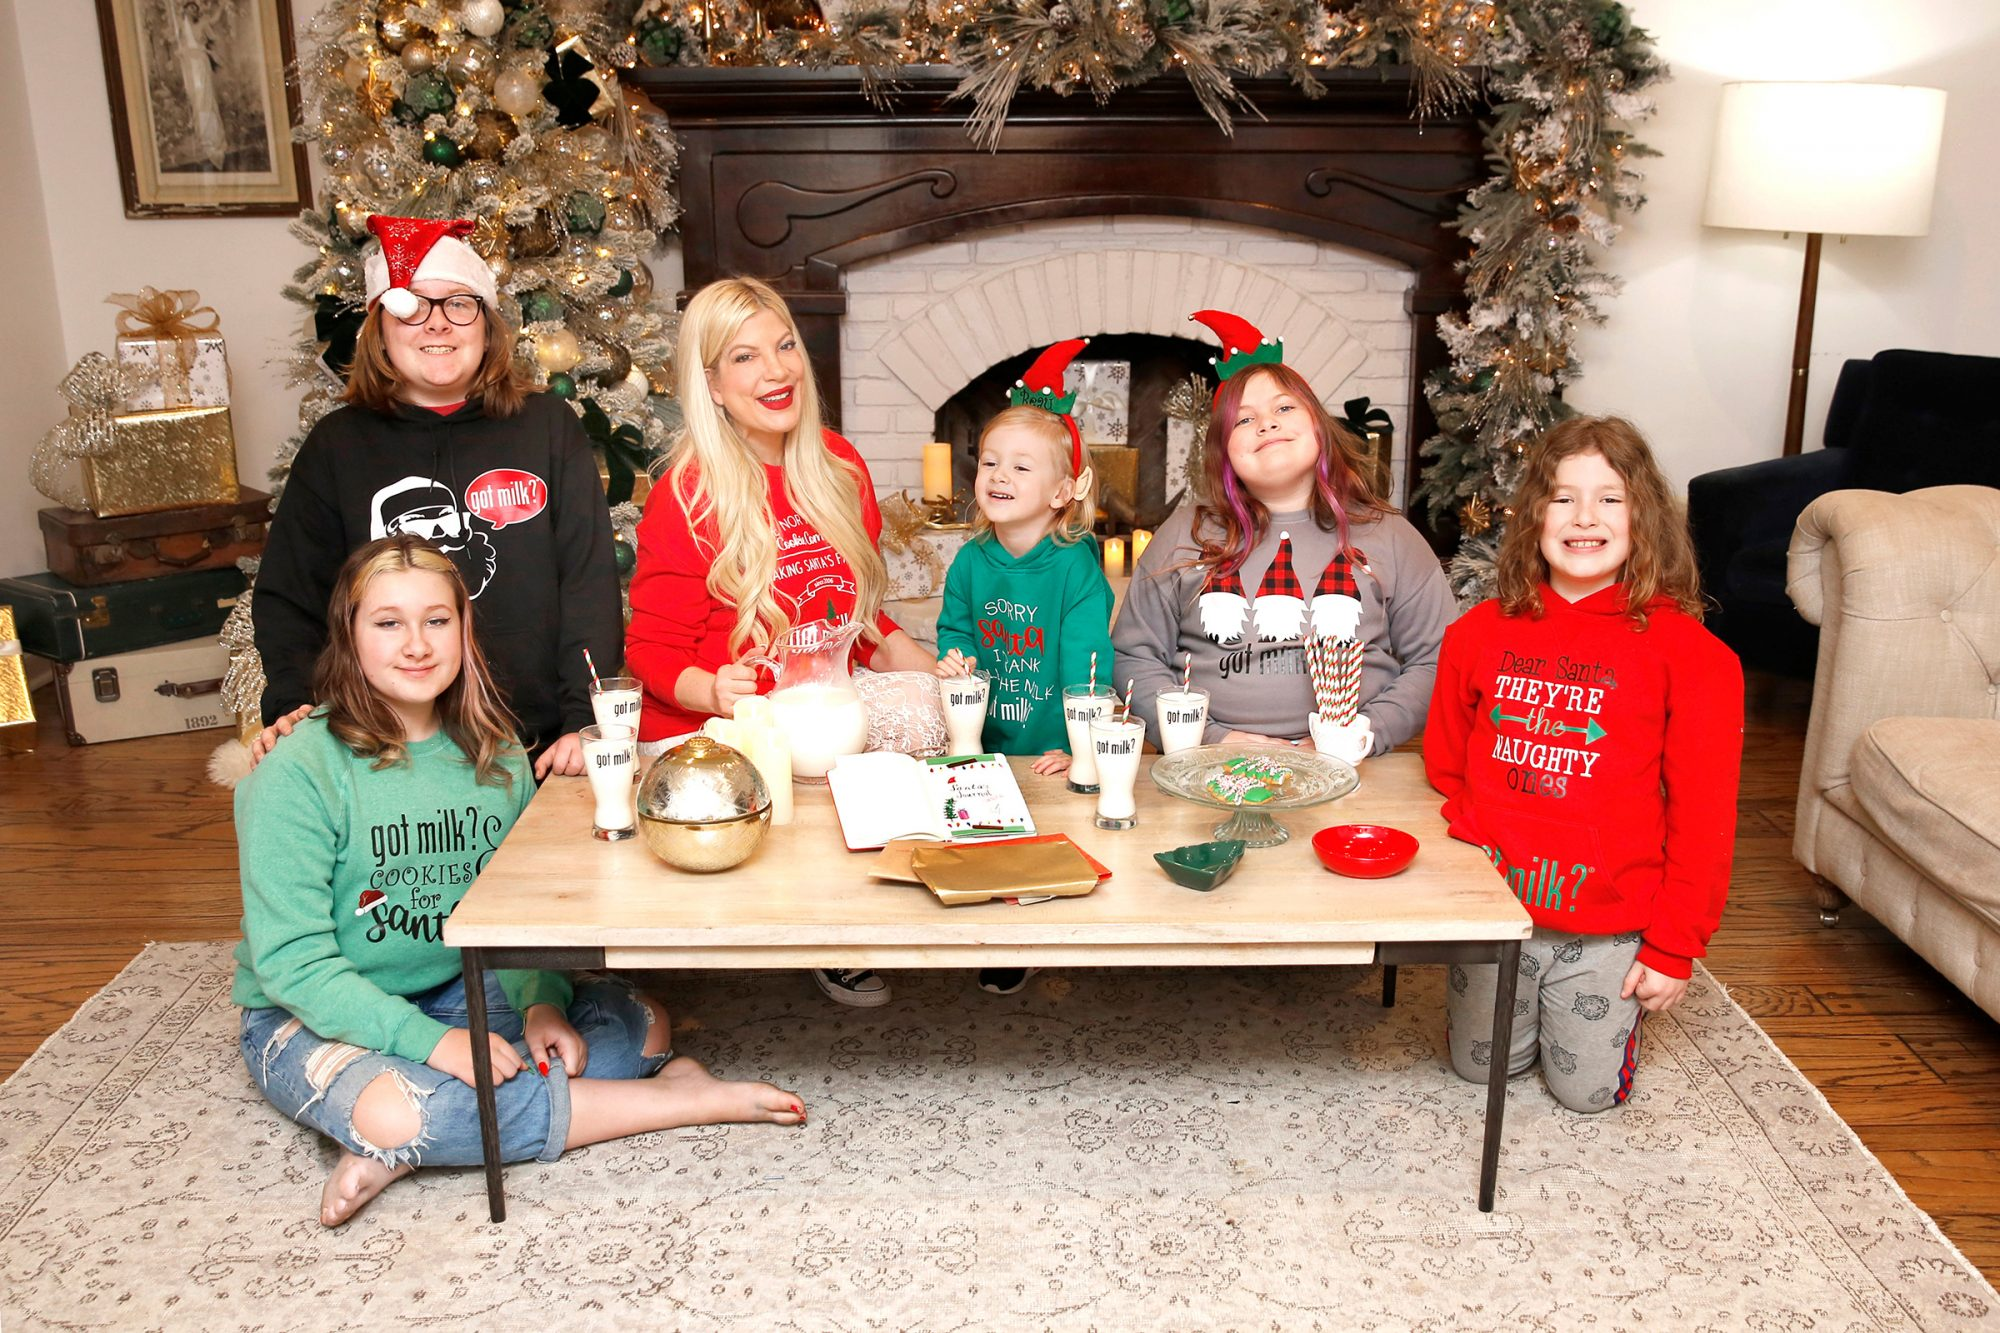 Tori Spelling keeps the magic of the holidays alive with 'got milk?' and Santa's Journal